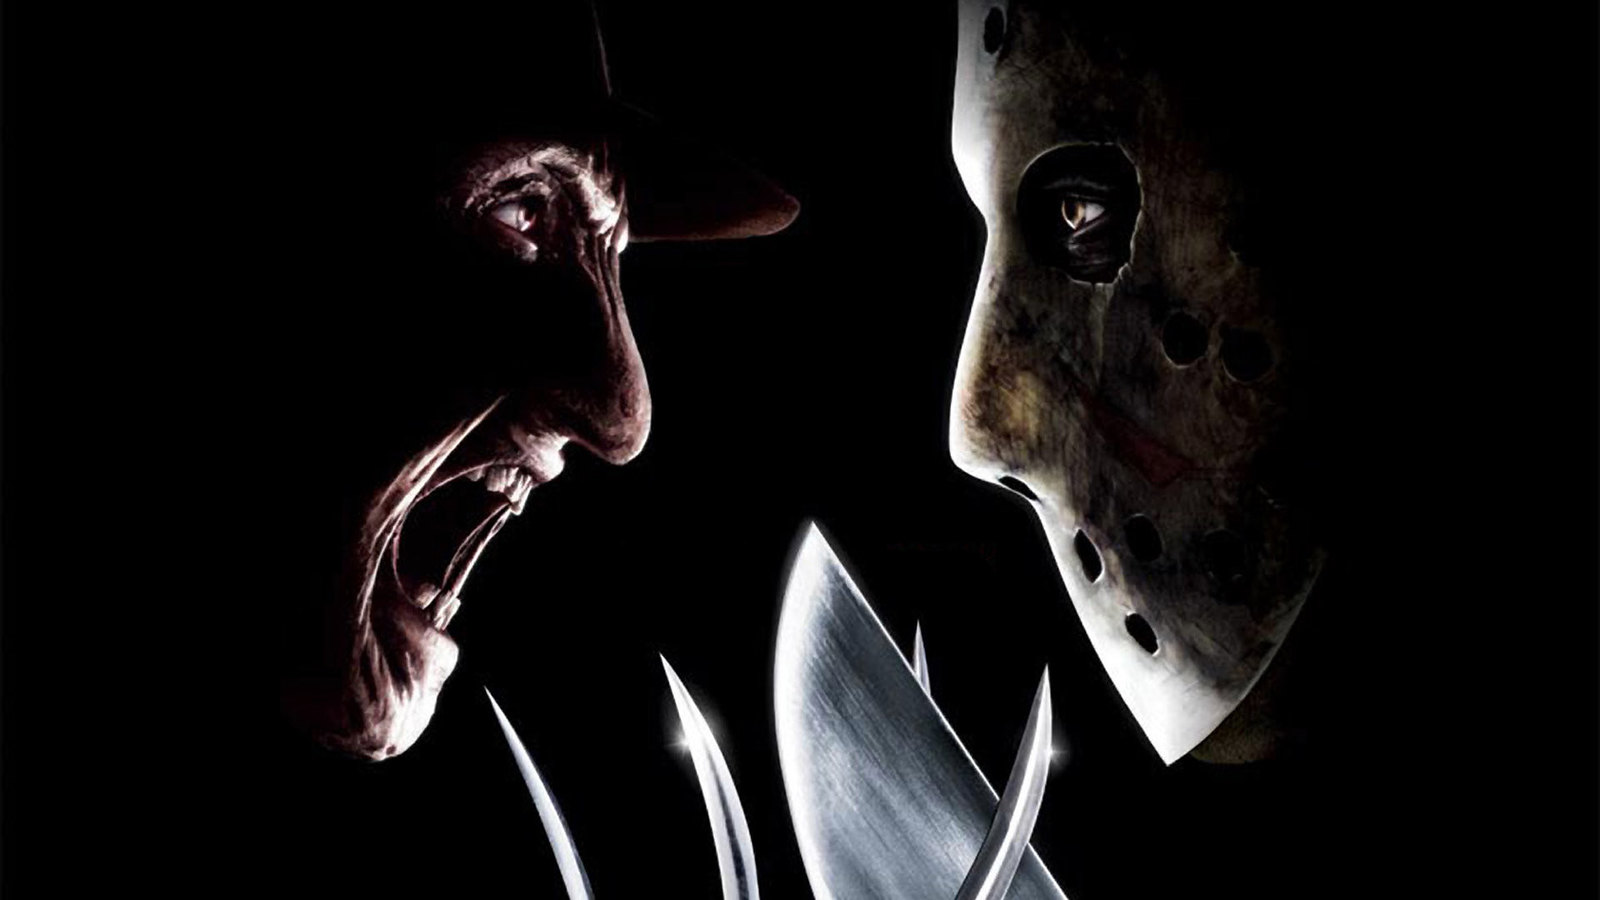 Ronny Yu Freddy Vs Jason